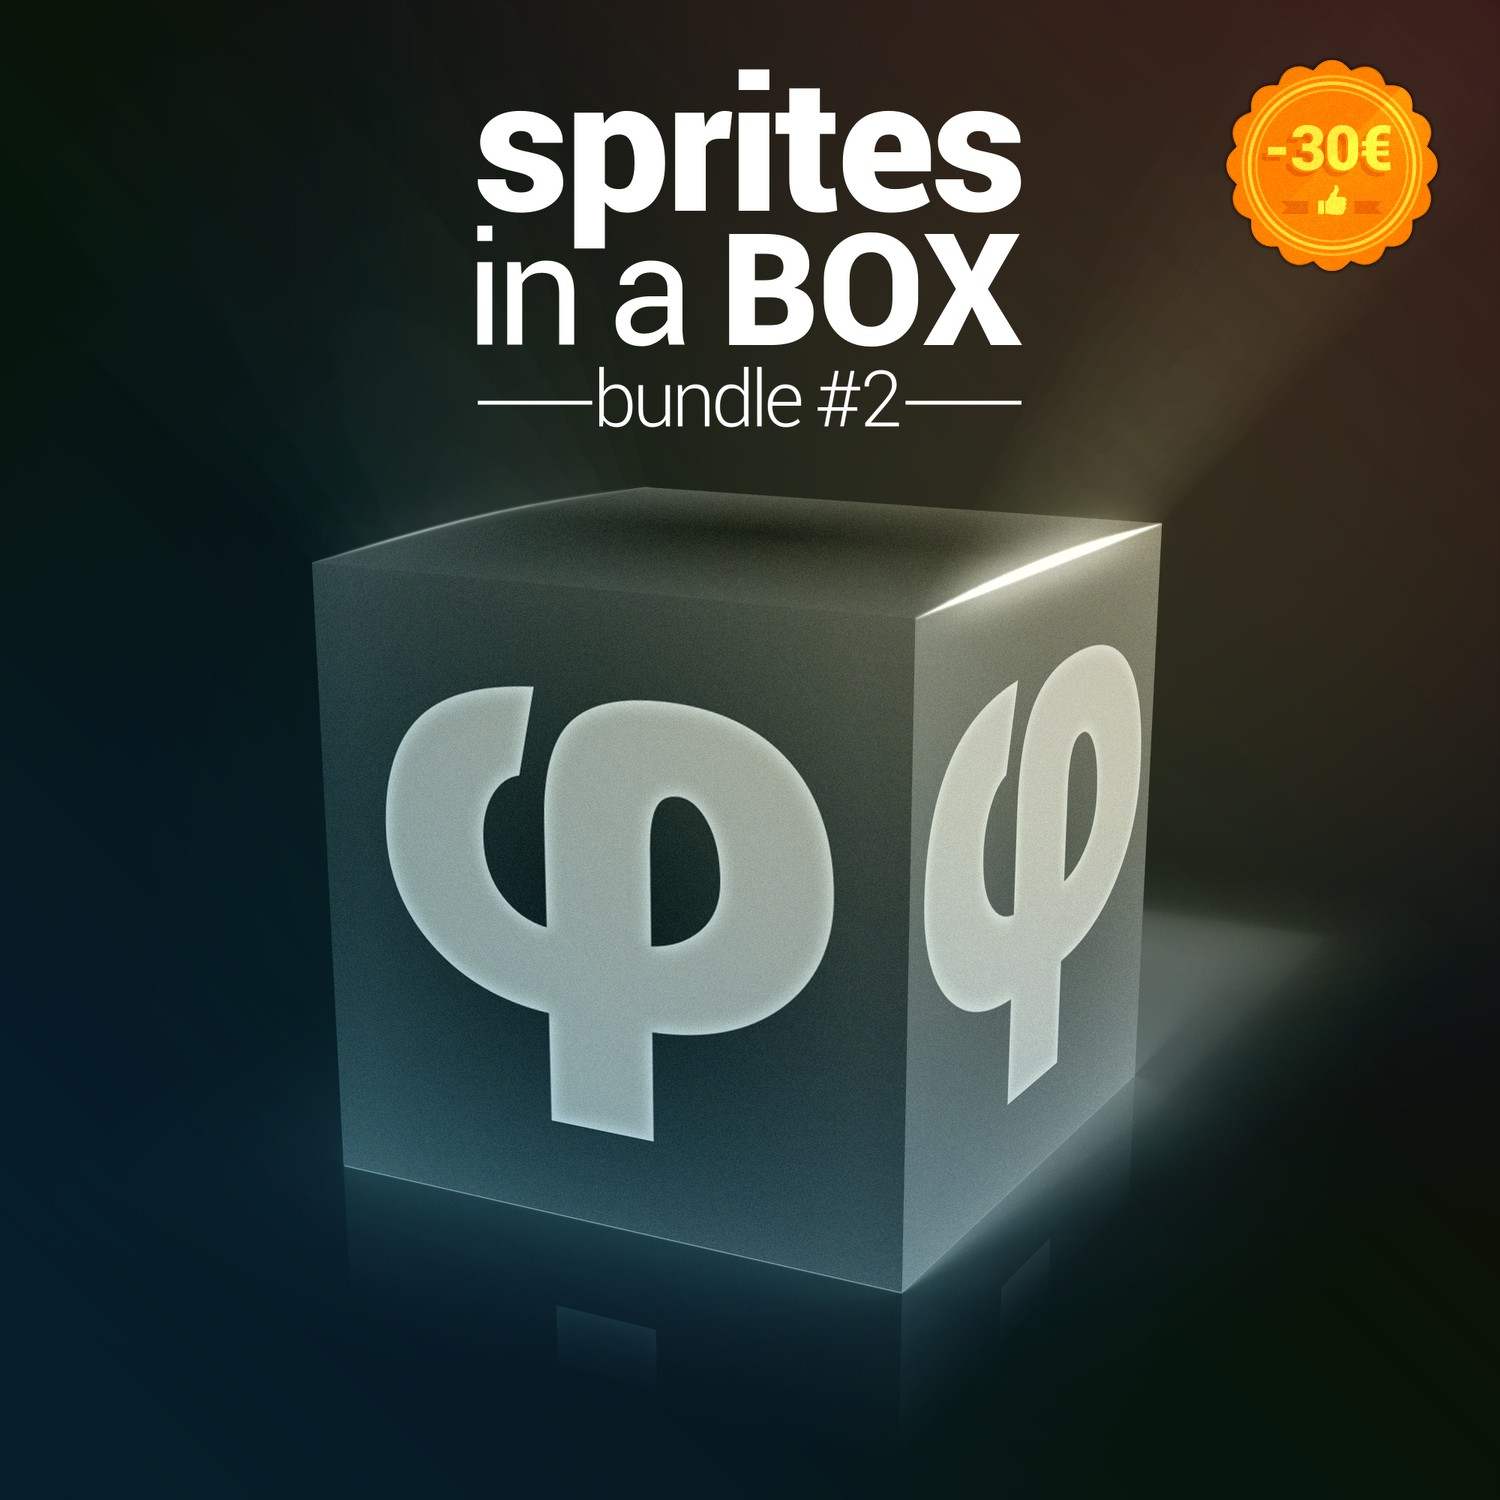 Royalty Free content pack - Sprites in a BOX Bundle - We supply the sprites, you supply the games!